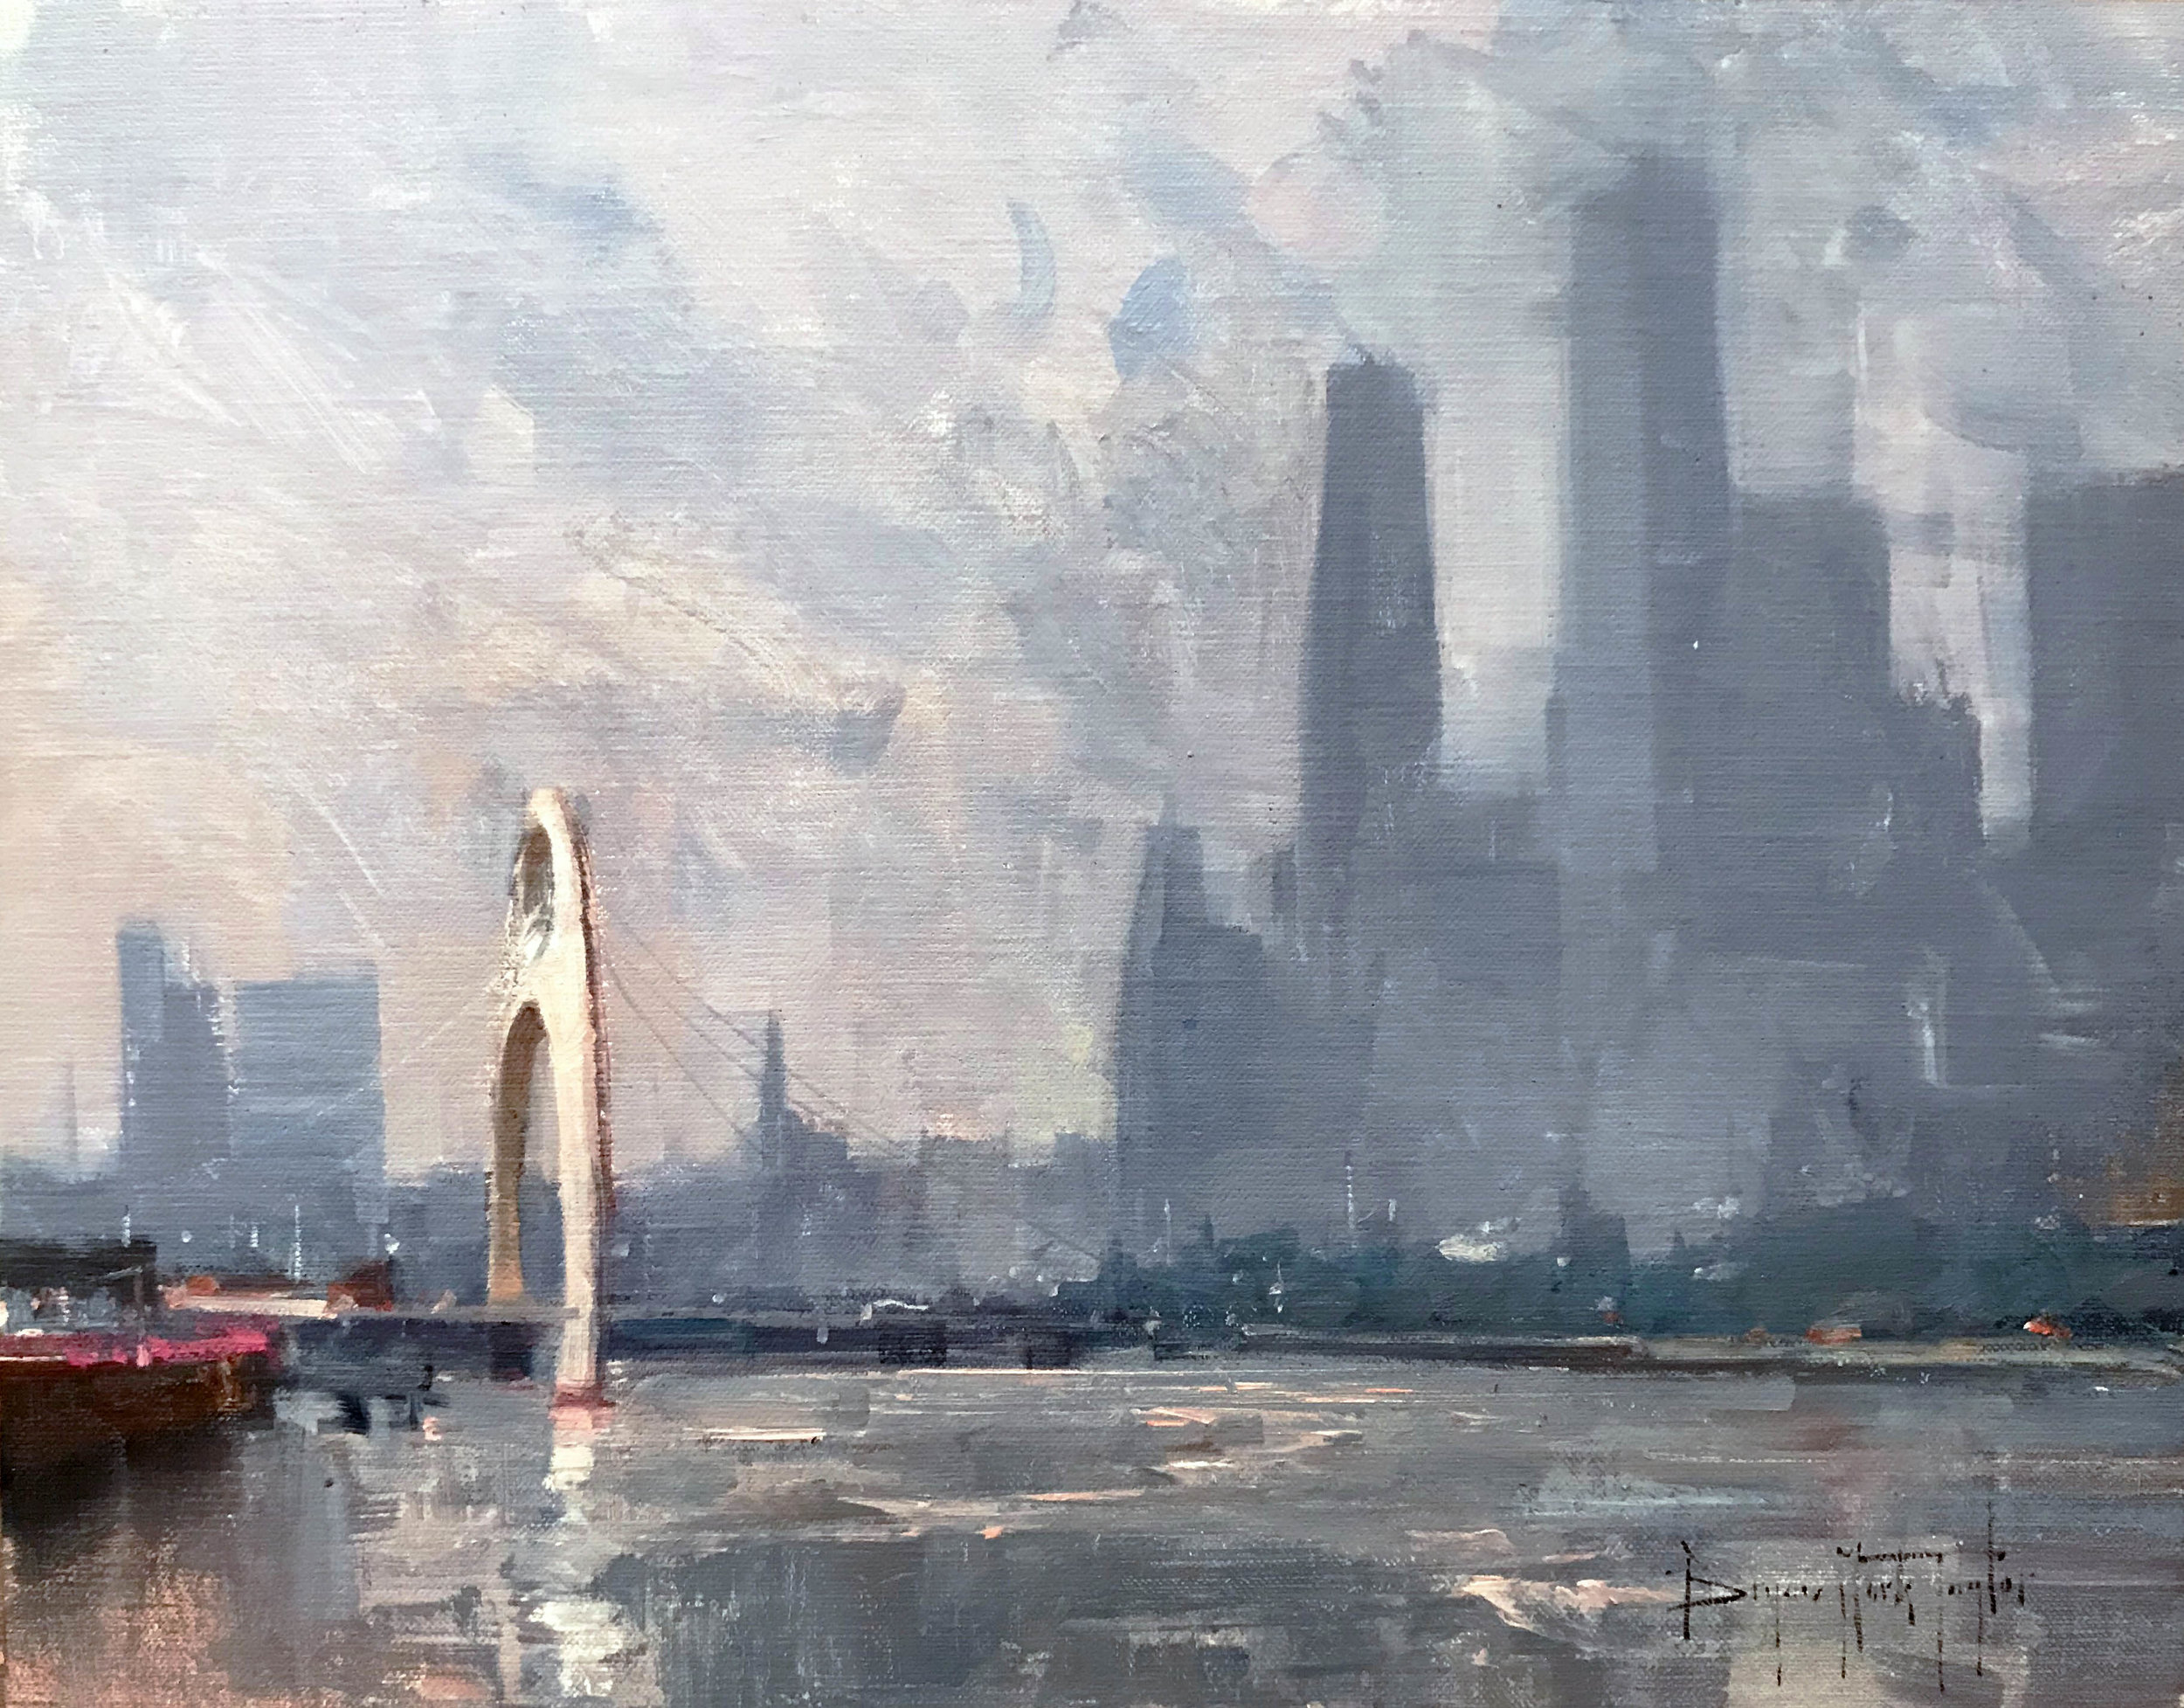 Bryan Mark Taylor. Guangzhou Skyline (2017) Oil on panel. 11 x 14 in.